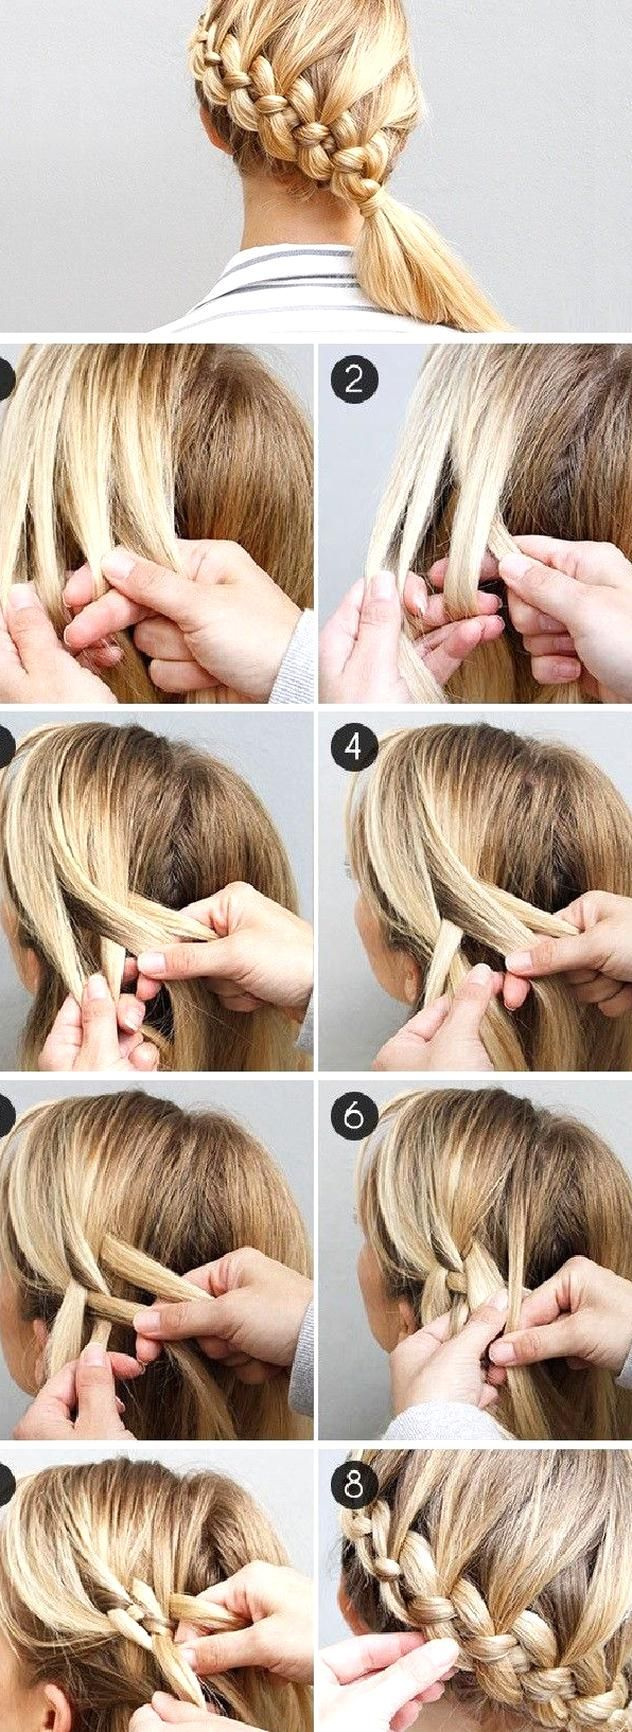 A Step By Step Guide To 4 Strand Dutch Braids By Divine Caroline The Four Strand Braid Made Easy Ish Hair Styles Braided Hairstyles New Braided Hairstyles